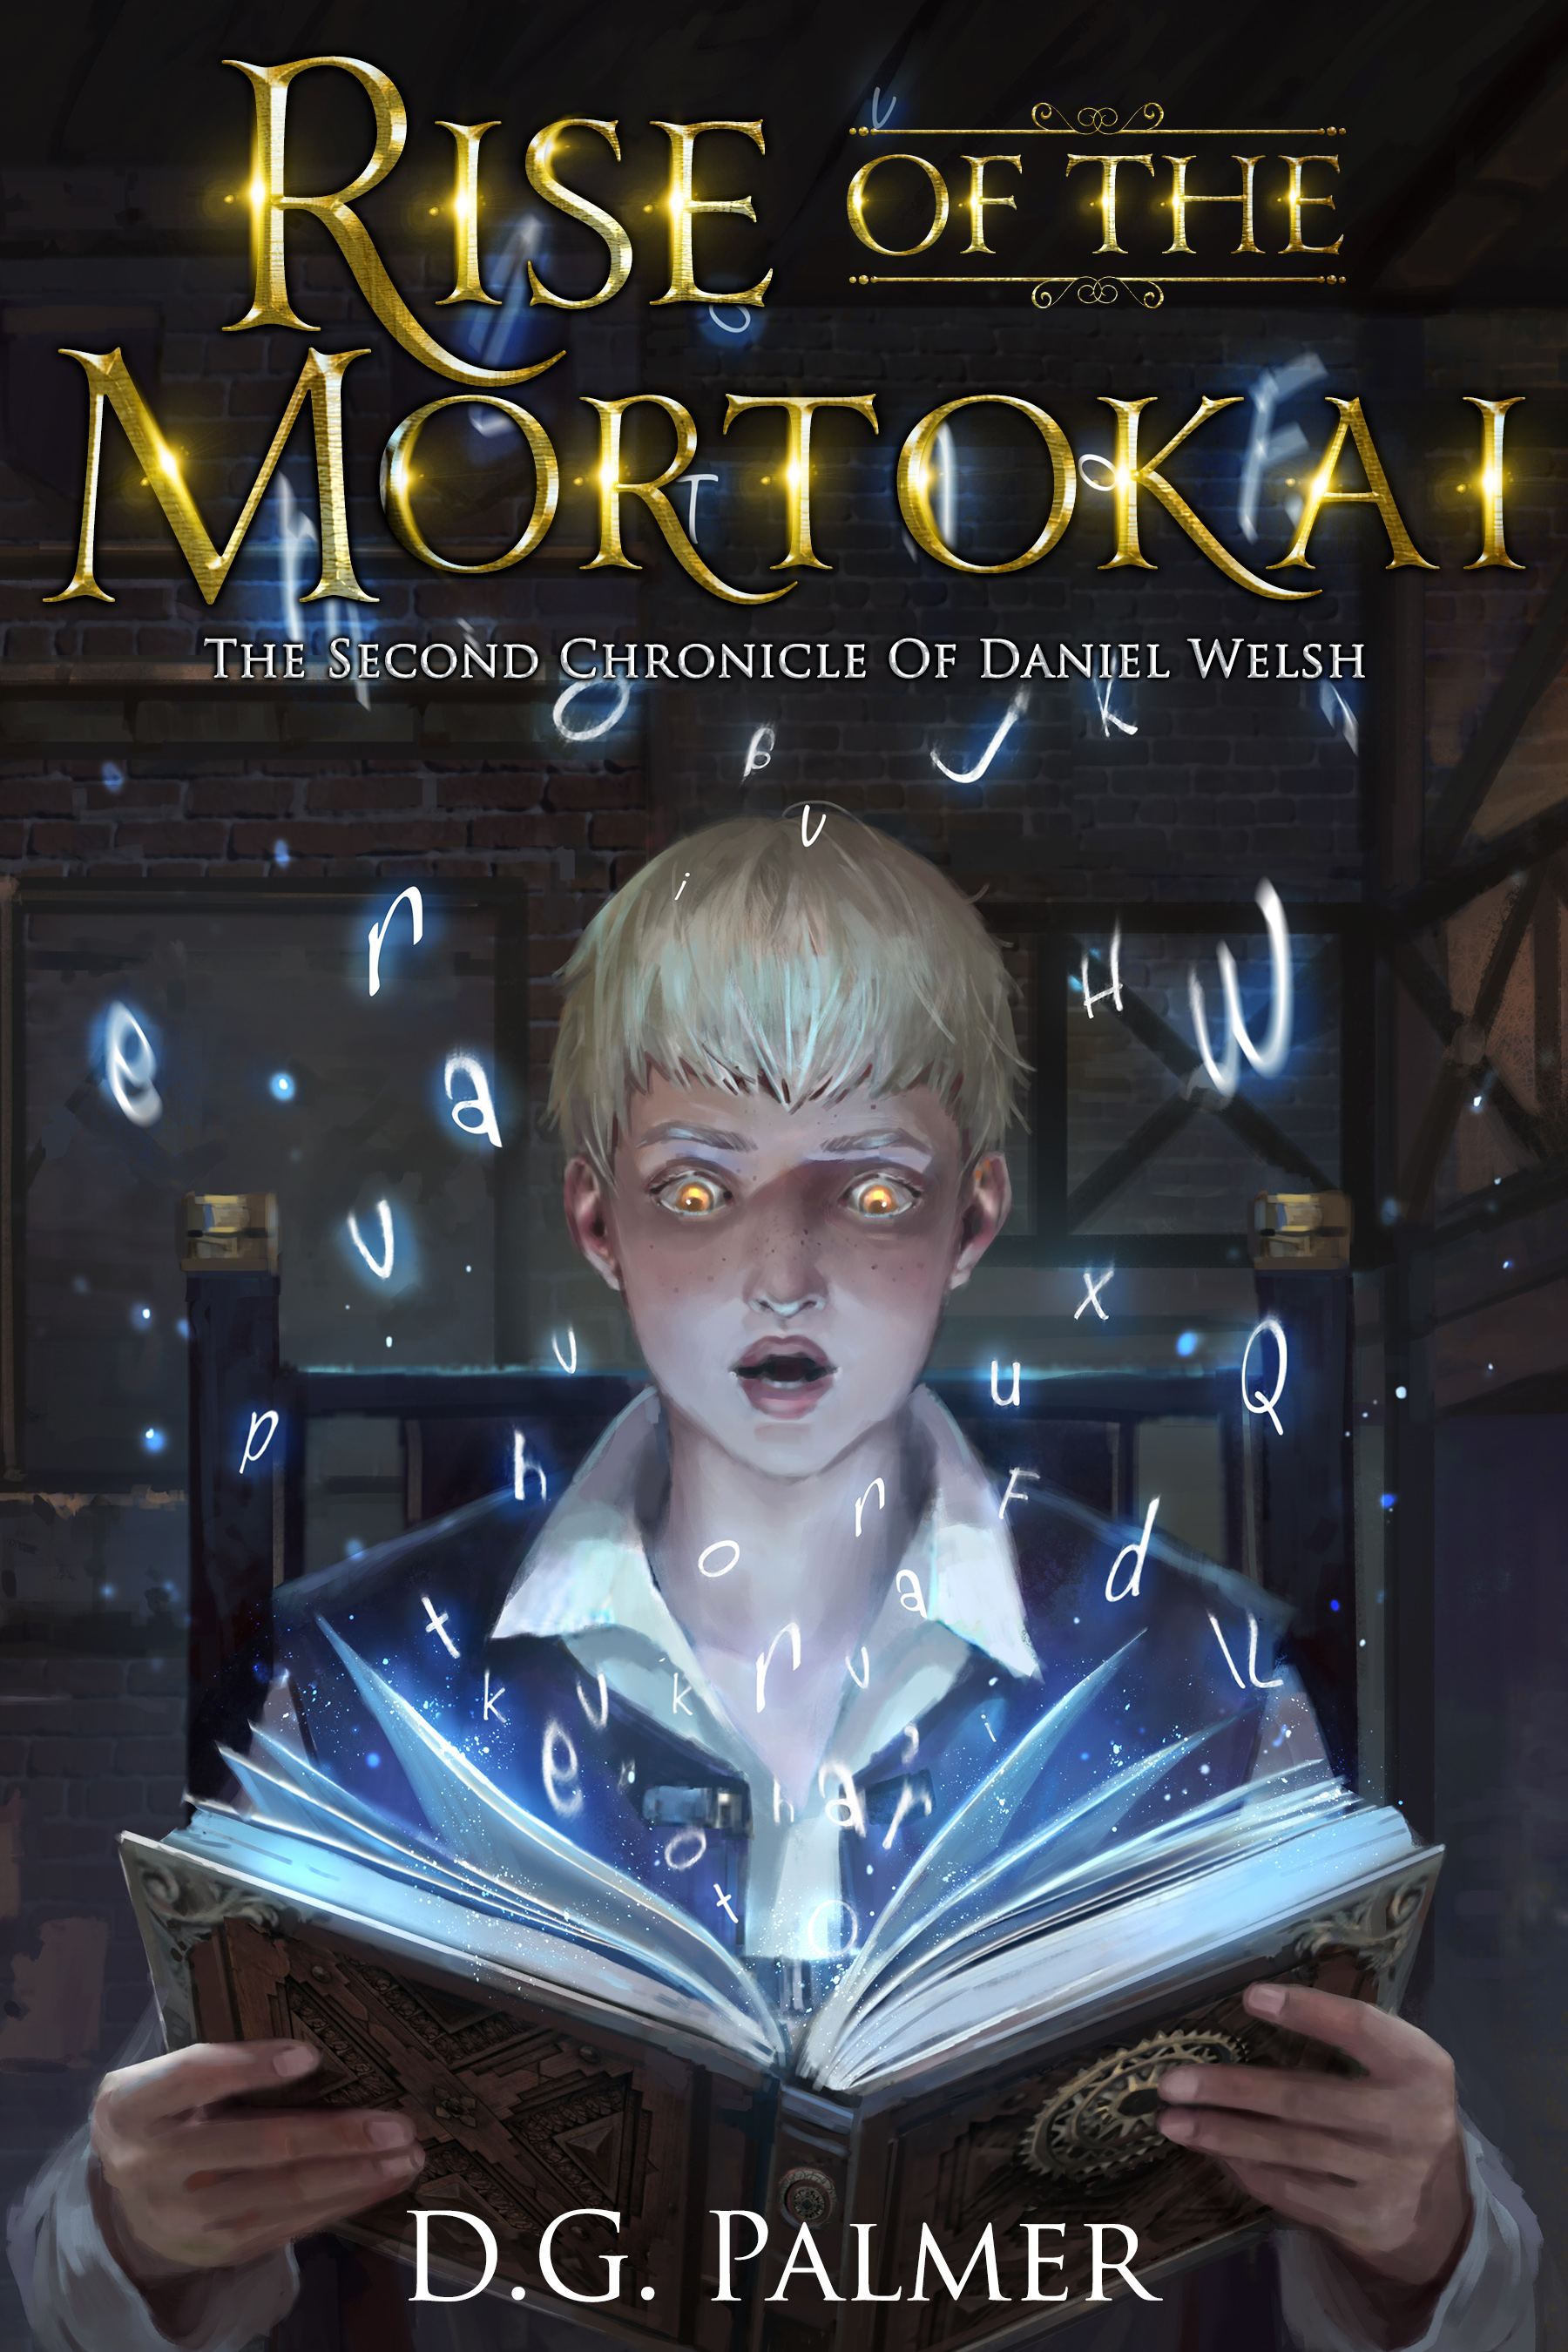 [PDF] [EPUB] Rise of The Mortokai: The Second Chronicle of Daniel Welsh (The Chronicles of Daniel Welsh, #2) Download by Desmond Palmer